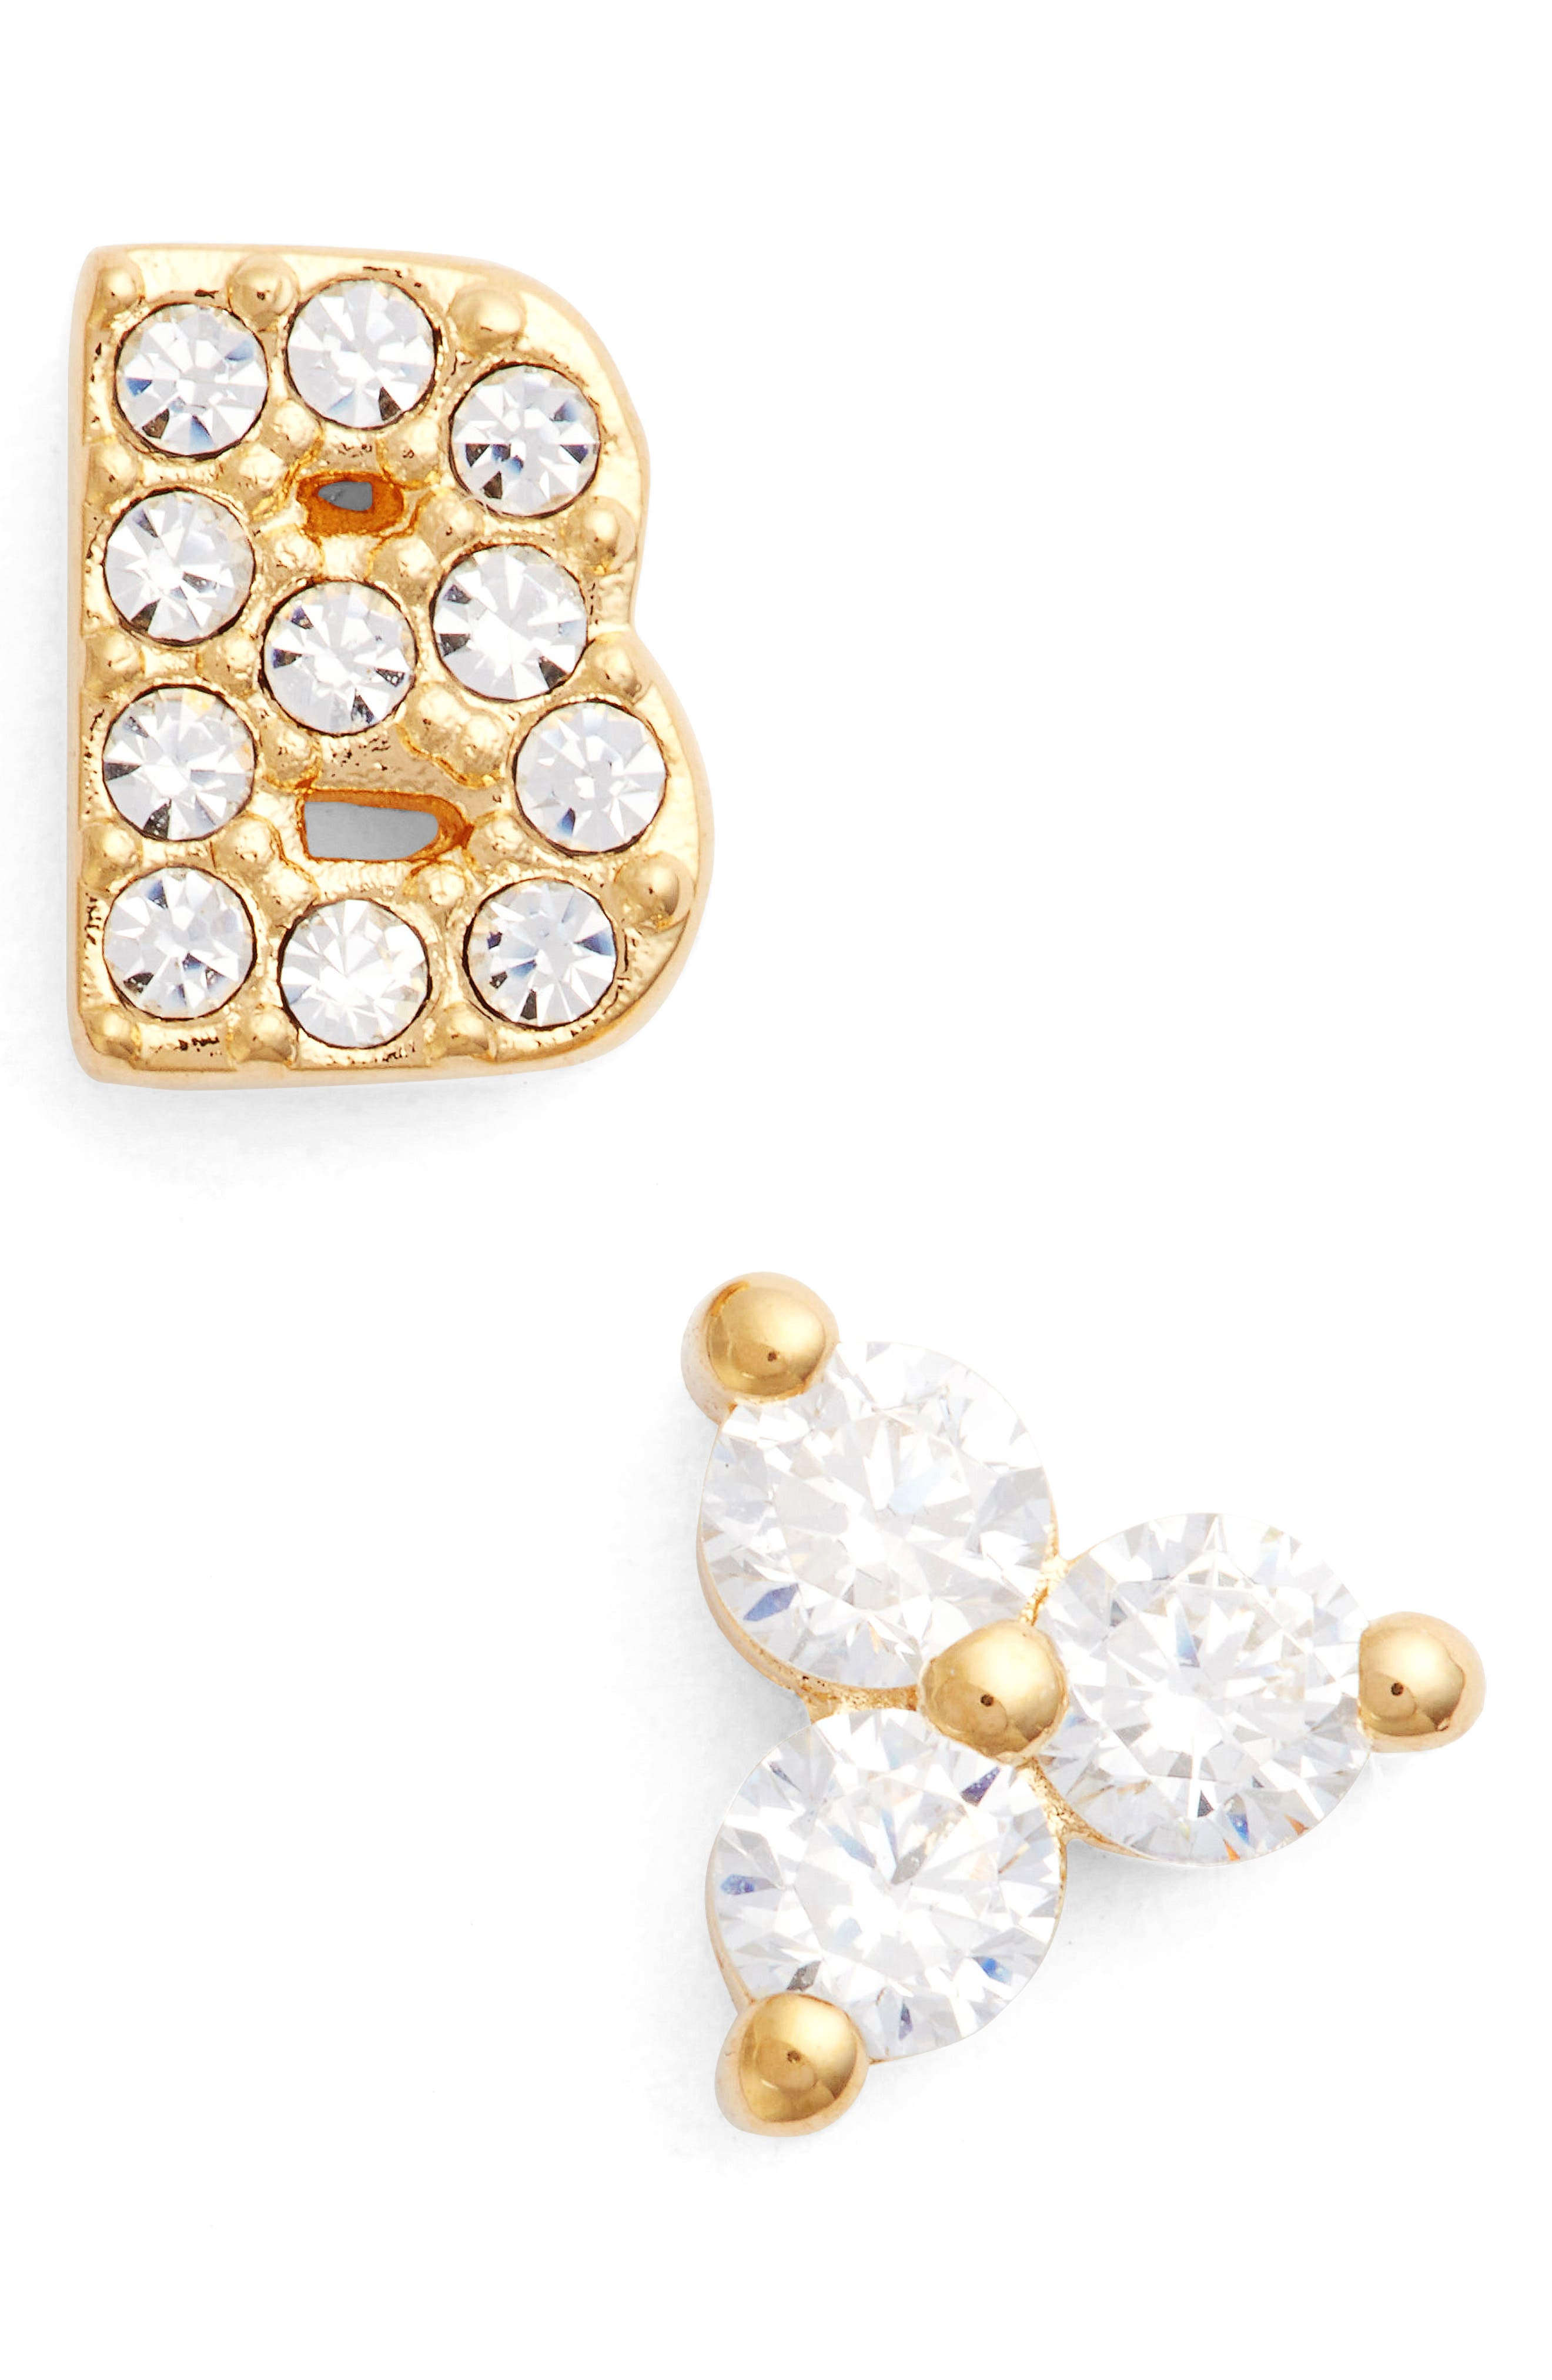 Initial Mismatched Stud Earrings,                             Main thumbnail 1, color,                             GOLD - B